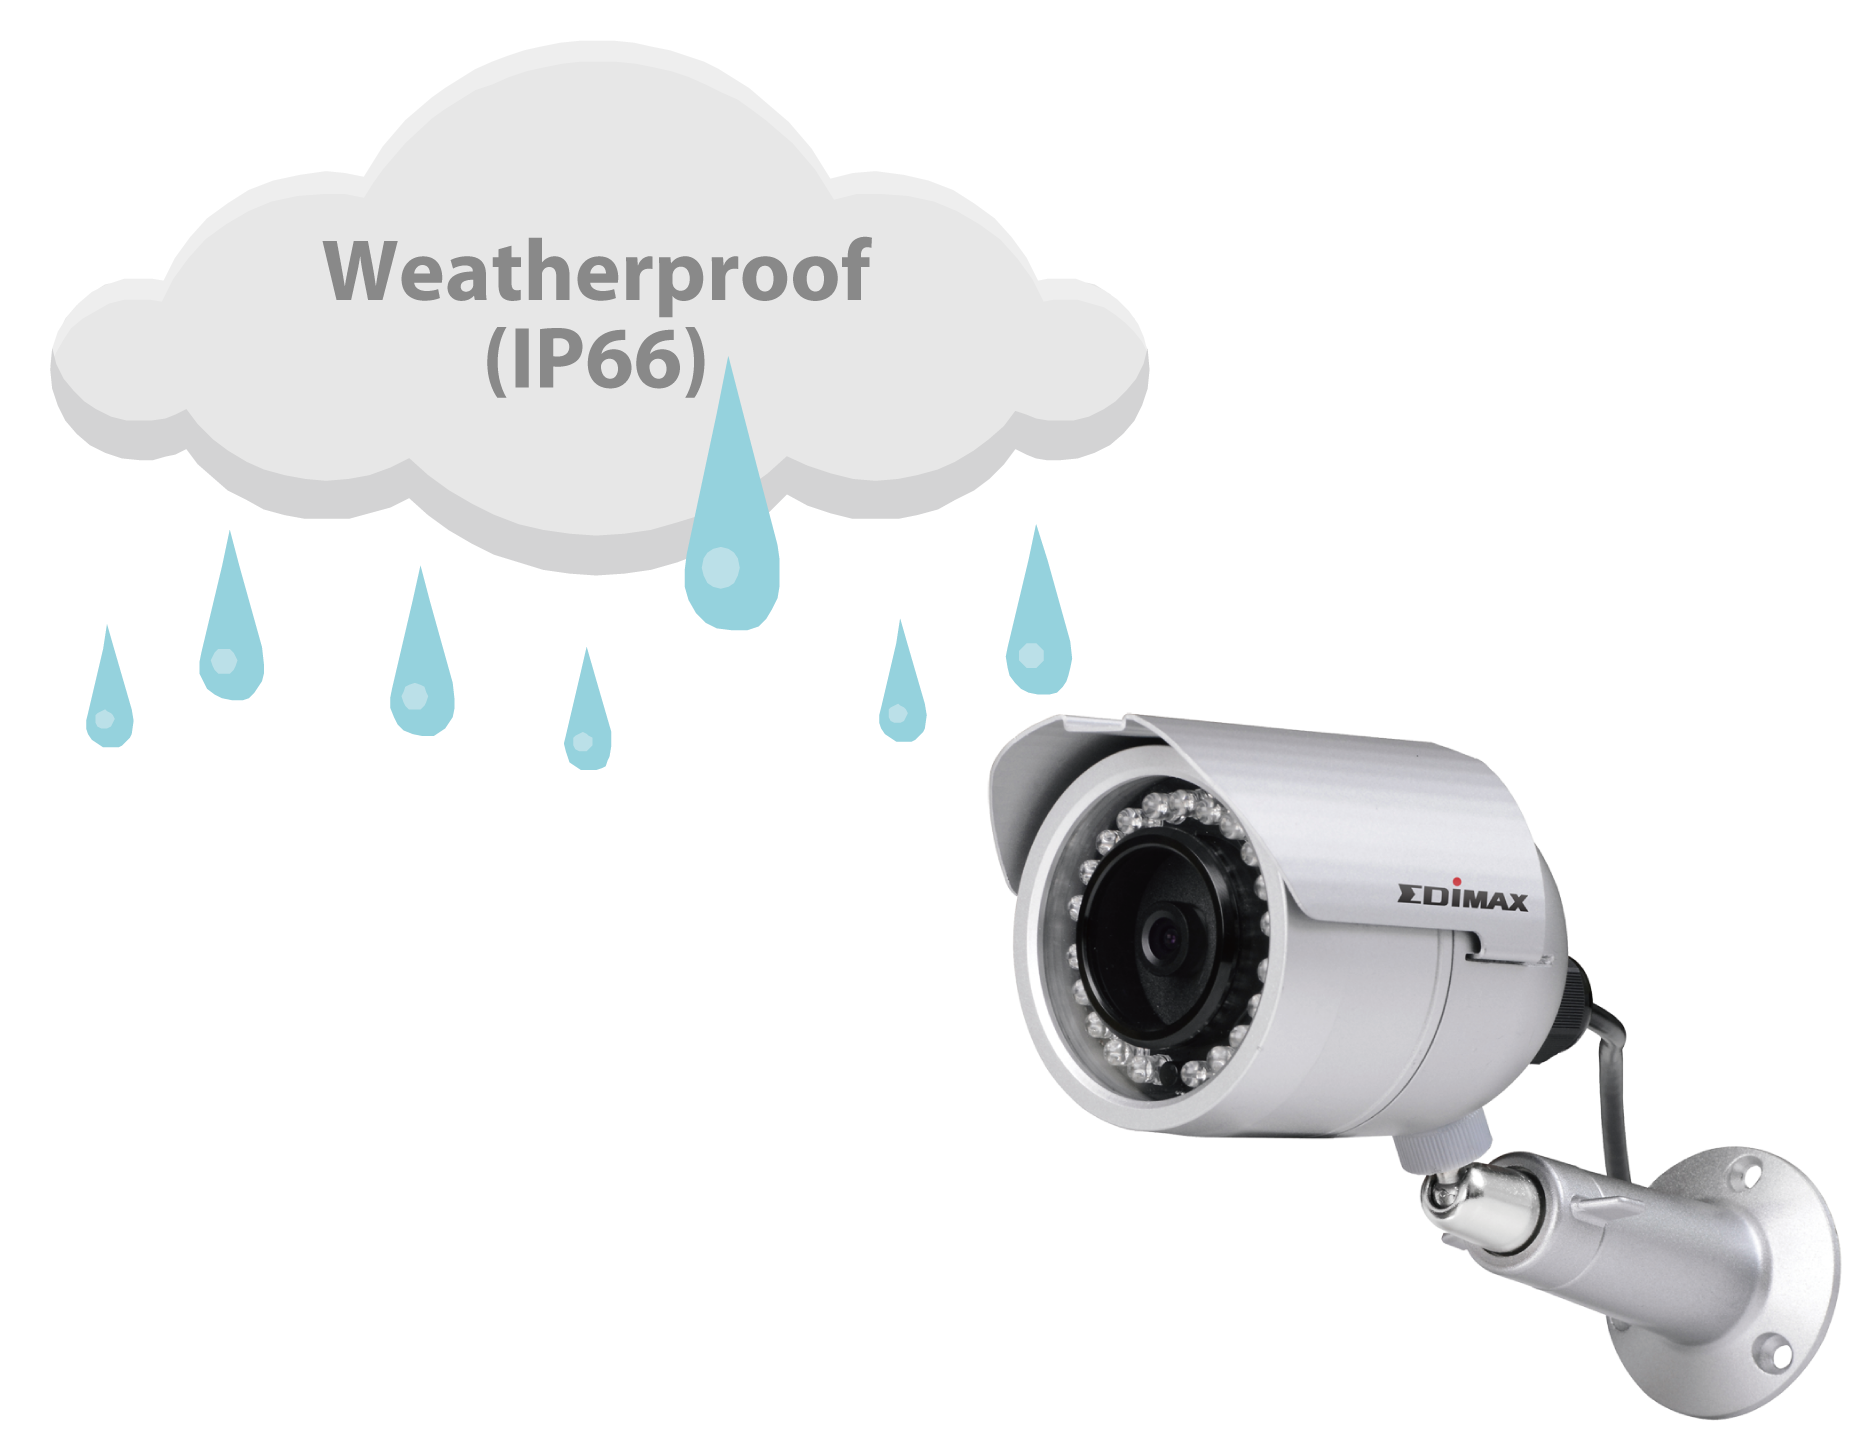 Edimax IR-112E 2Mpx Outdoor PoE True Day & Night Bullet Network Camera Bullet Network Camera IR-112E_Weatherproof_IP66.png